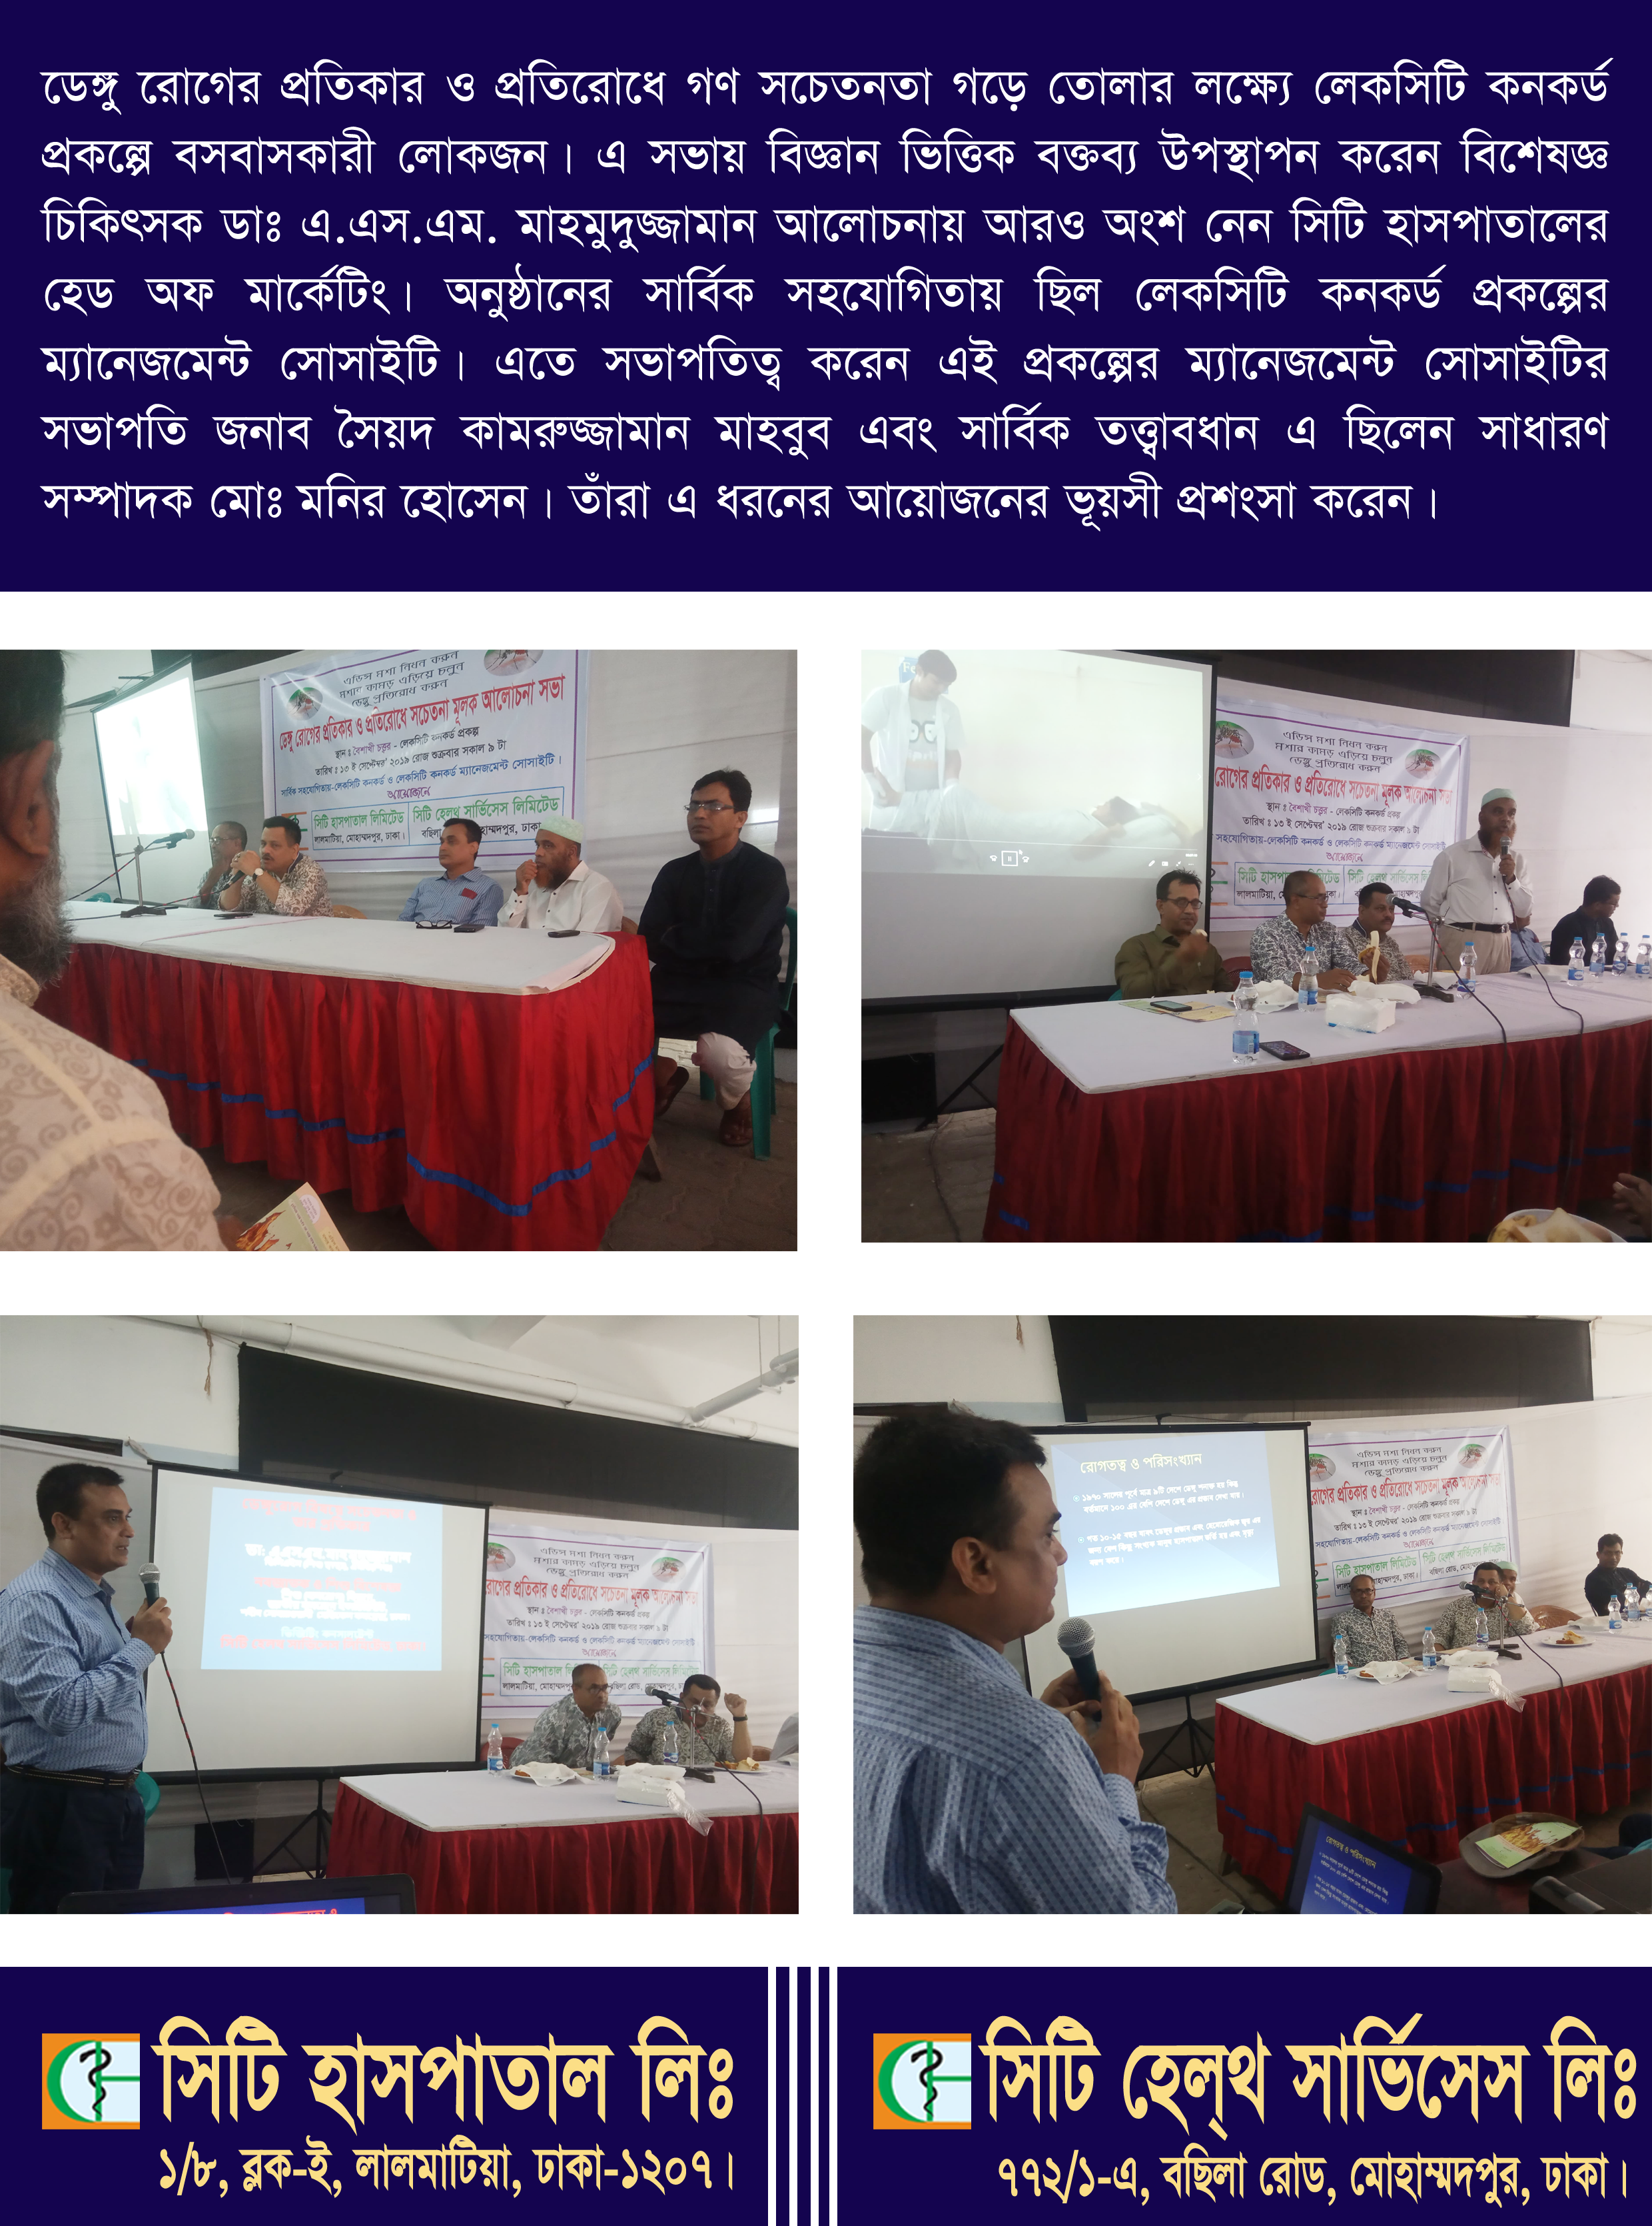 Dengue Awareness Seminar, at Lakecity Concord Project, Khilkhat, Dhaka.